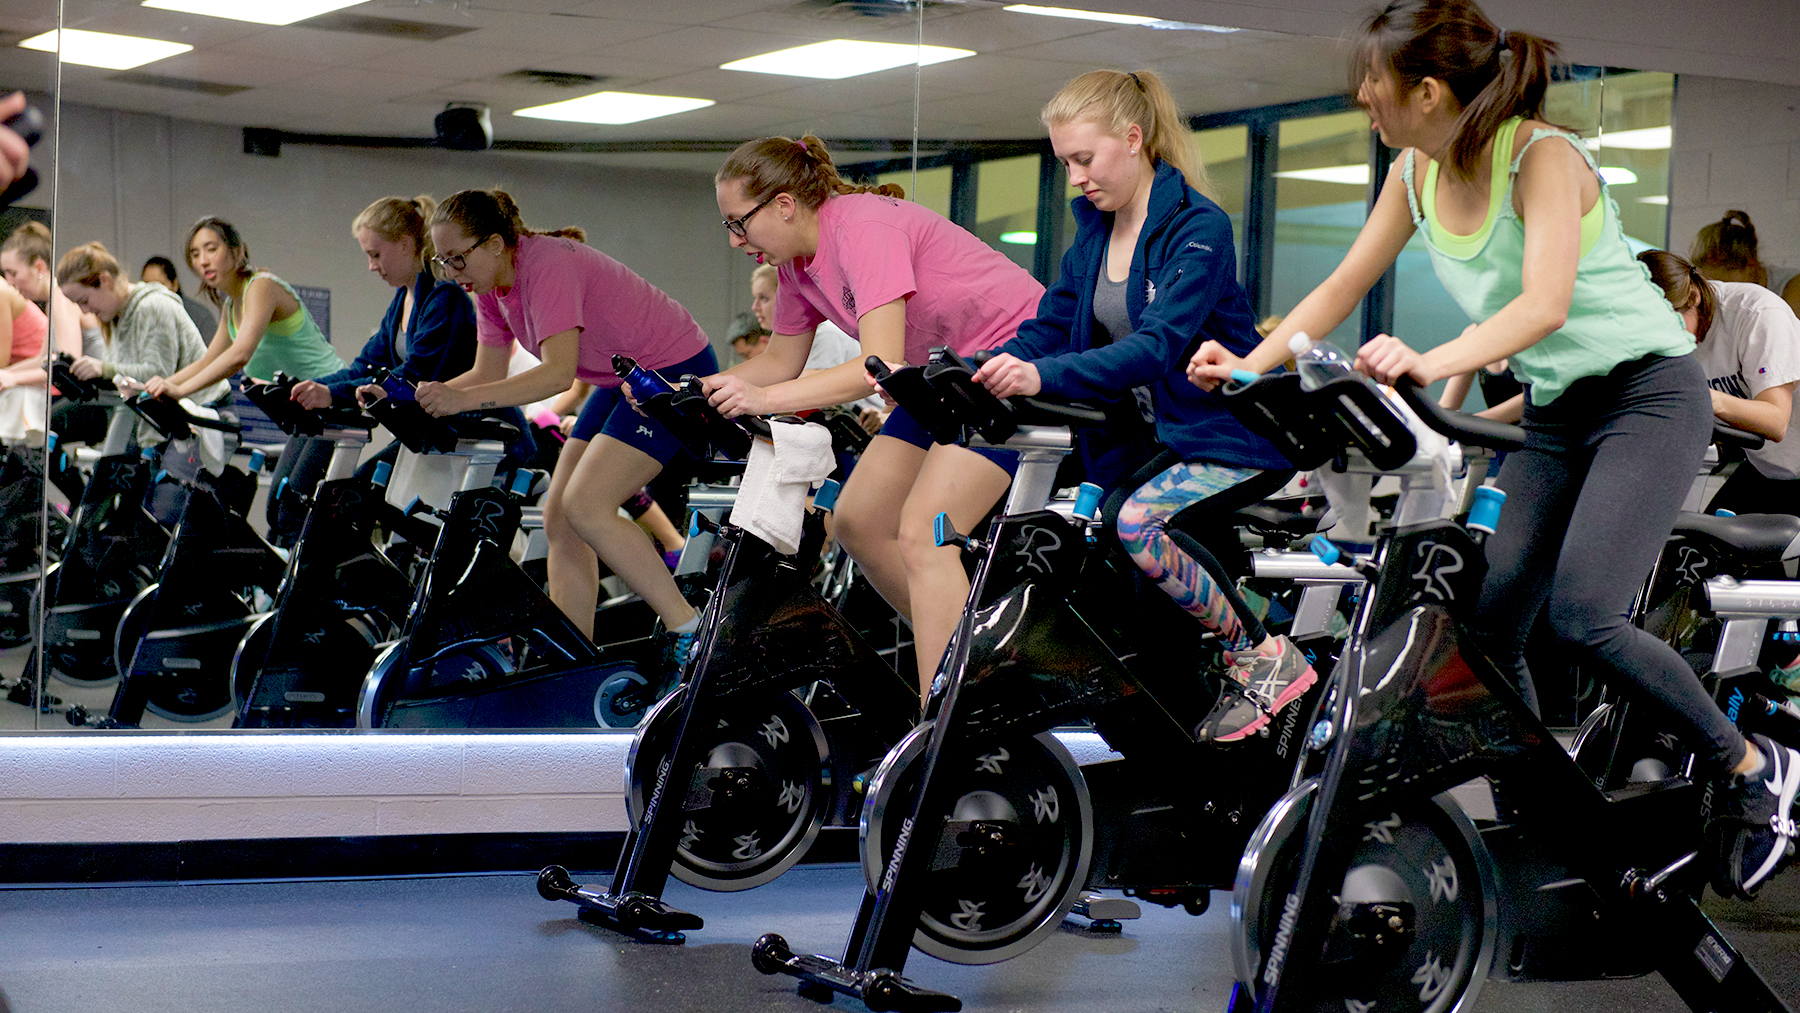 Students spin cylces in a group class in front of a mirror.